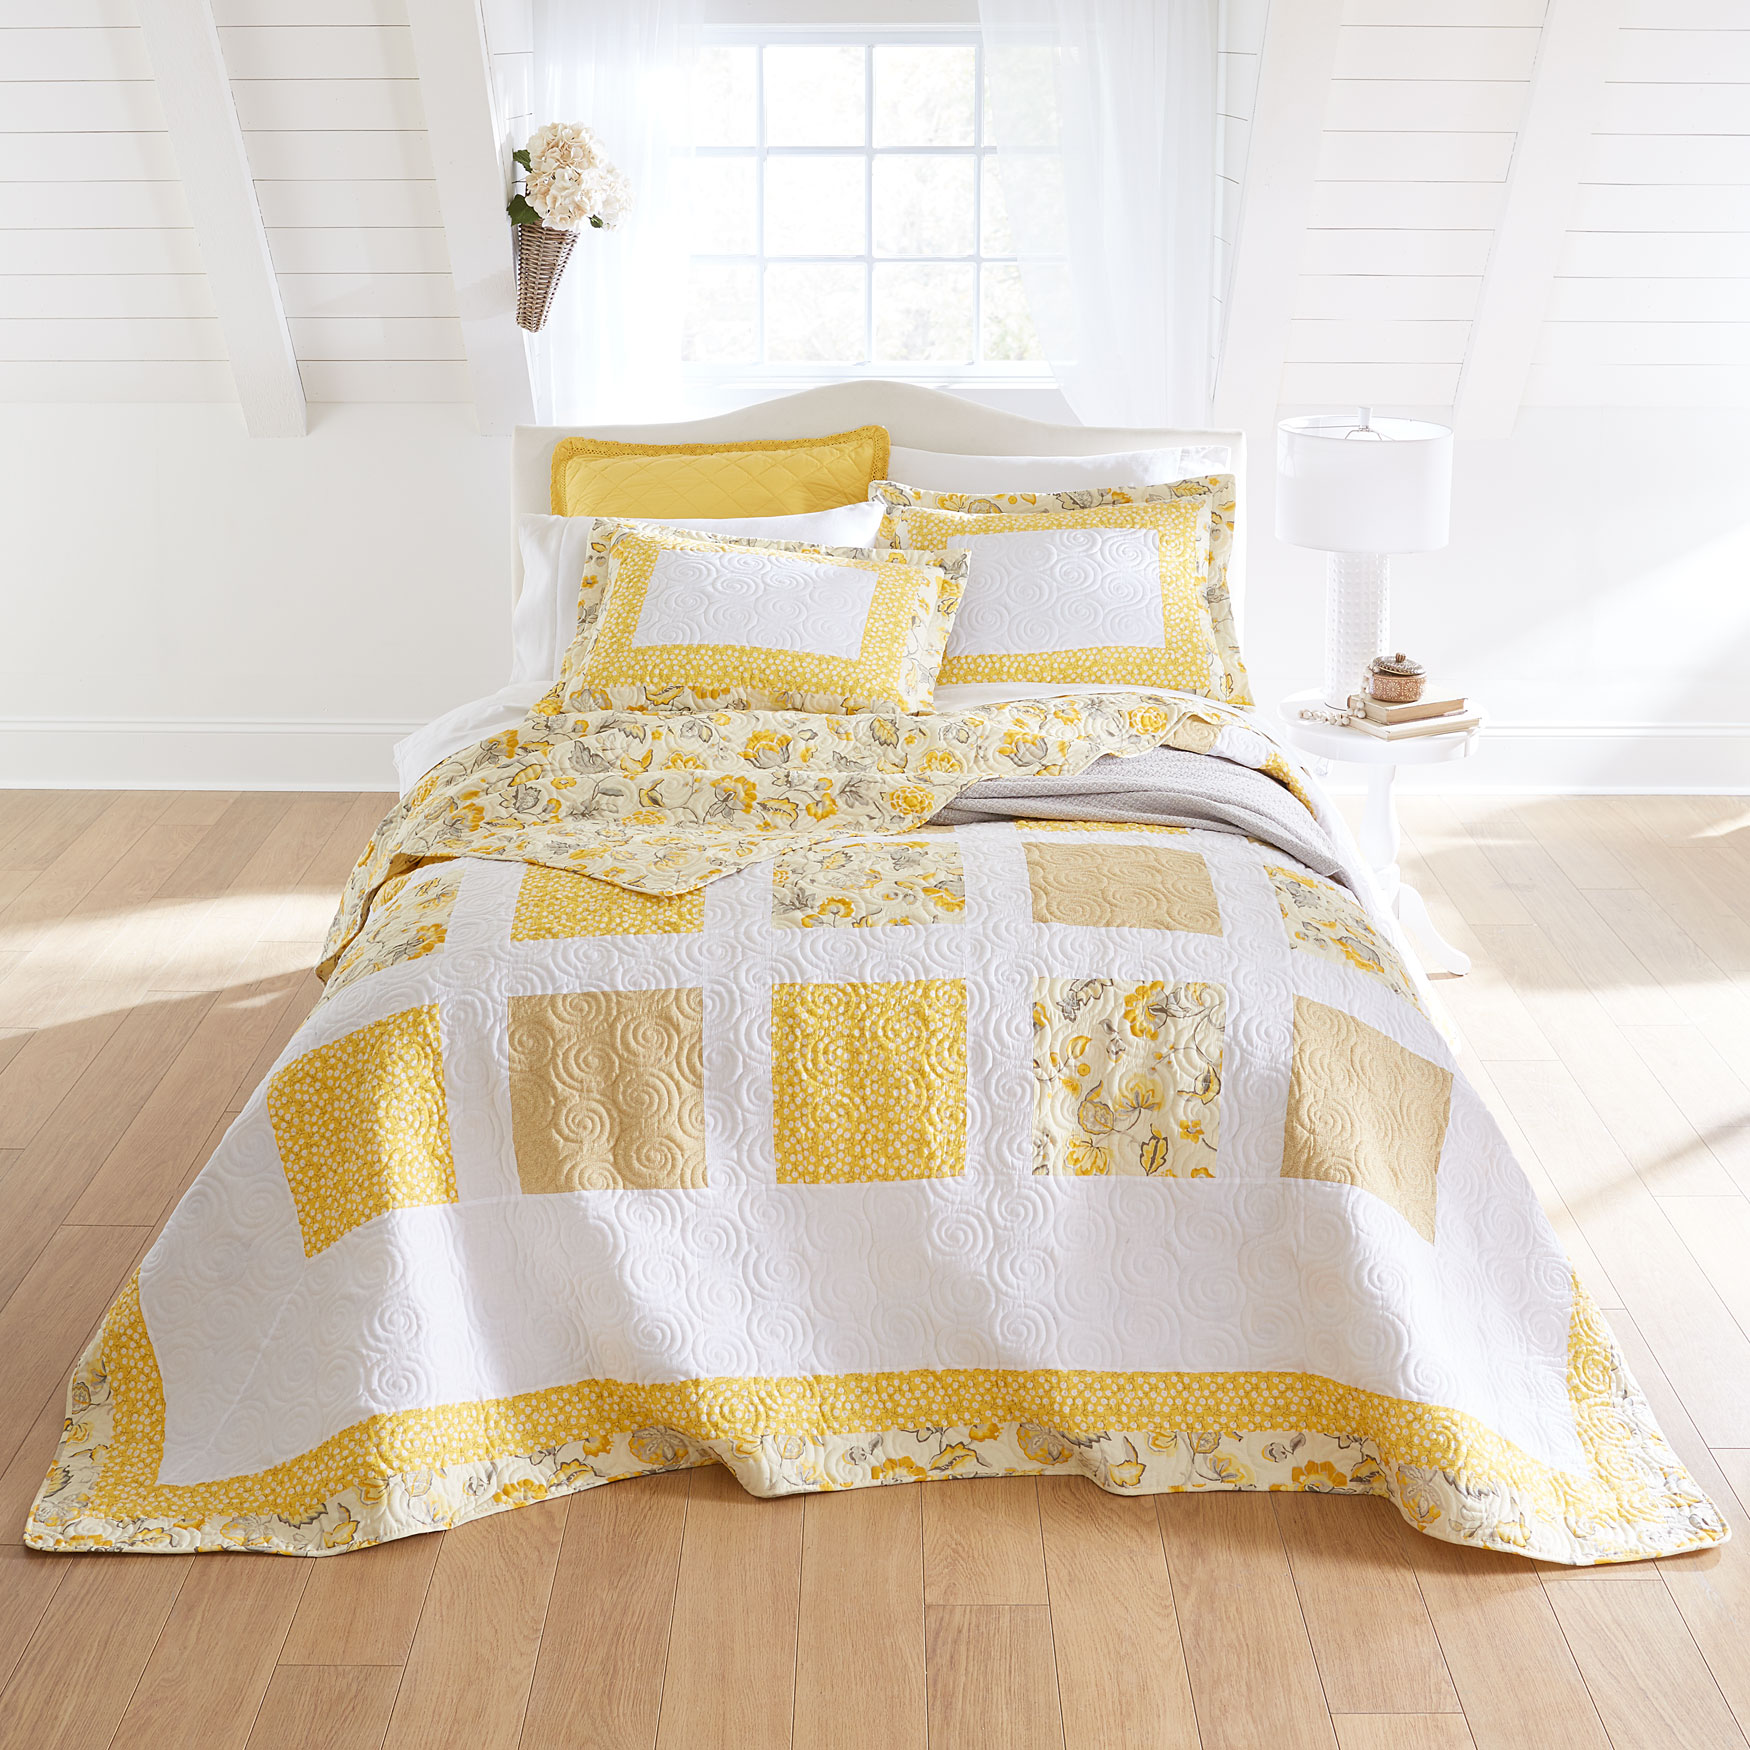 Dahlia Floral Bedspread Collection,